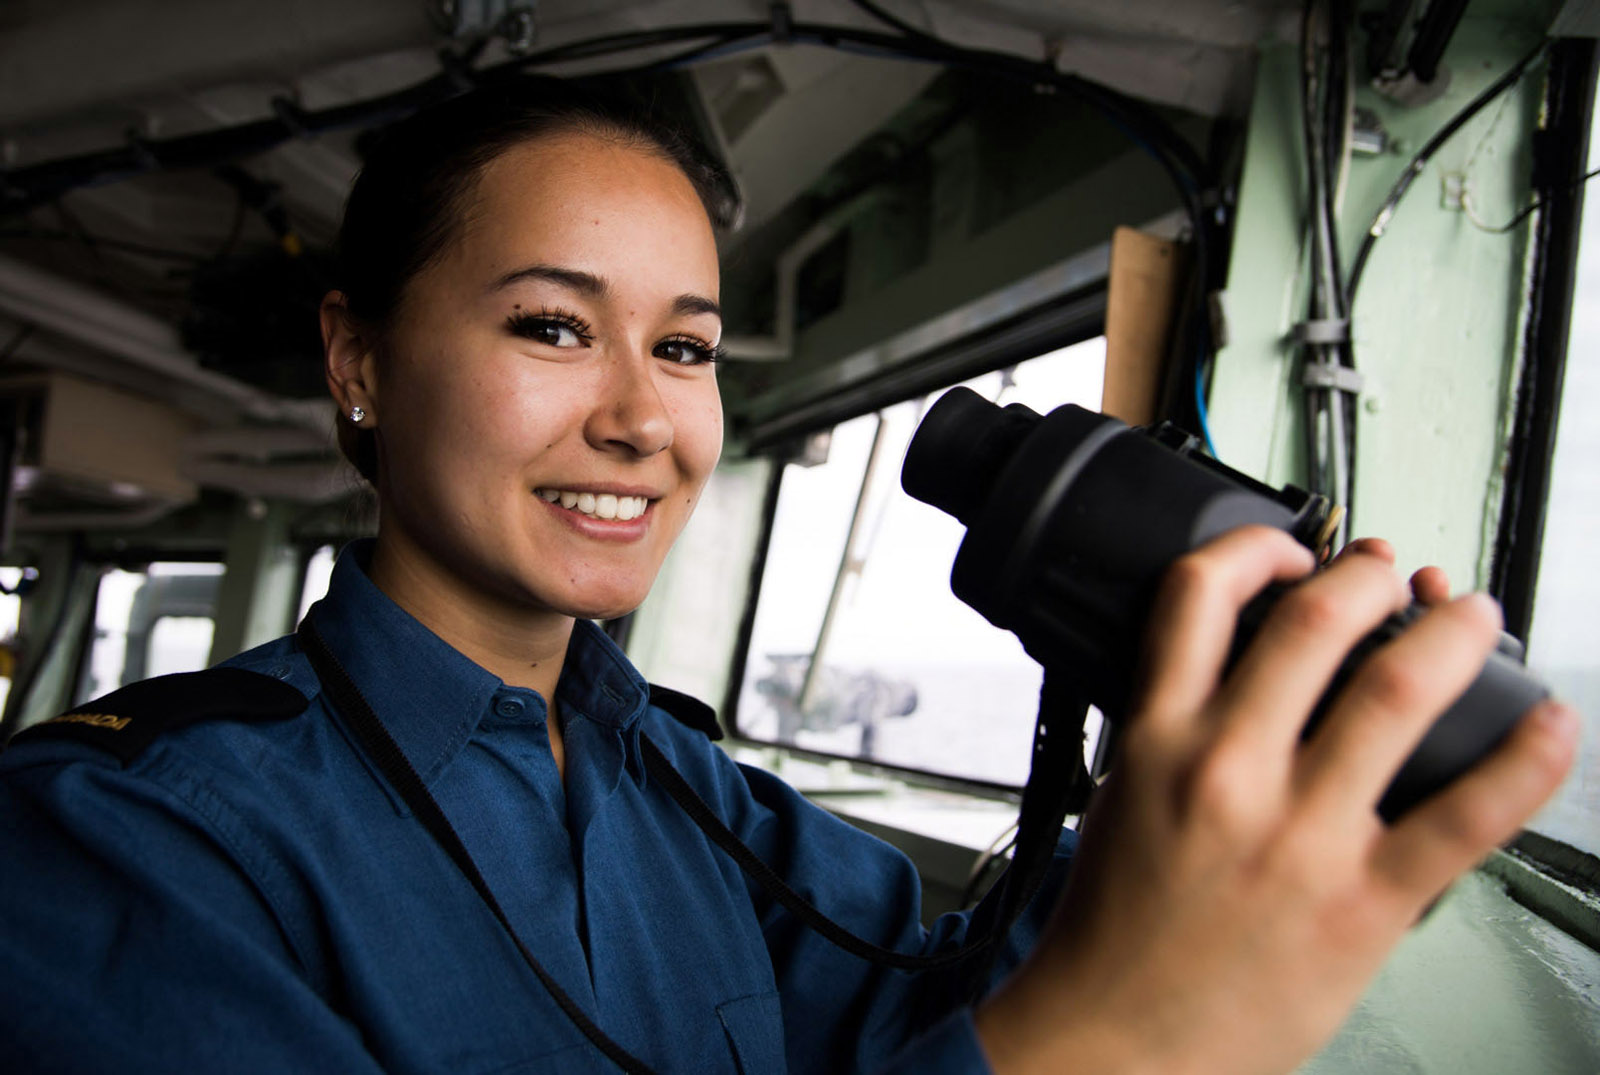 Ordinary Seaman Nathalie Miller of HMCS Montréal watches the horizon for icebergs.